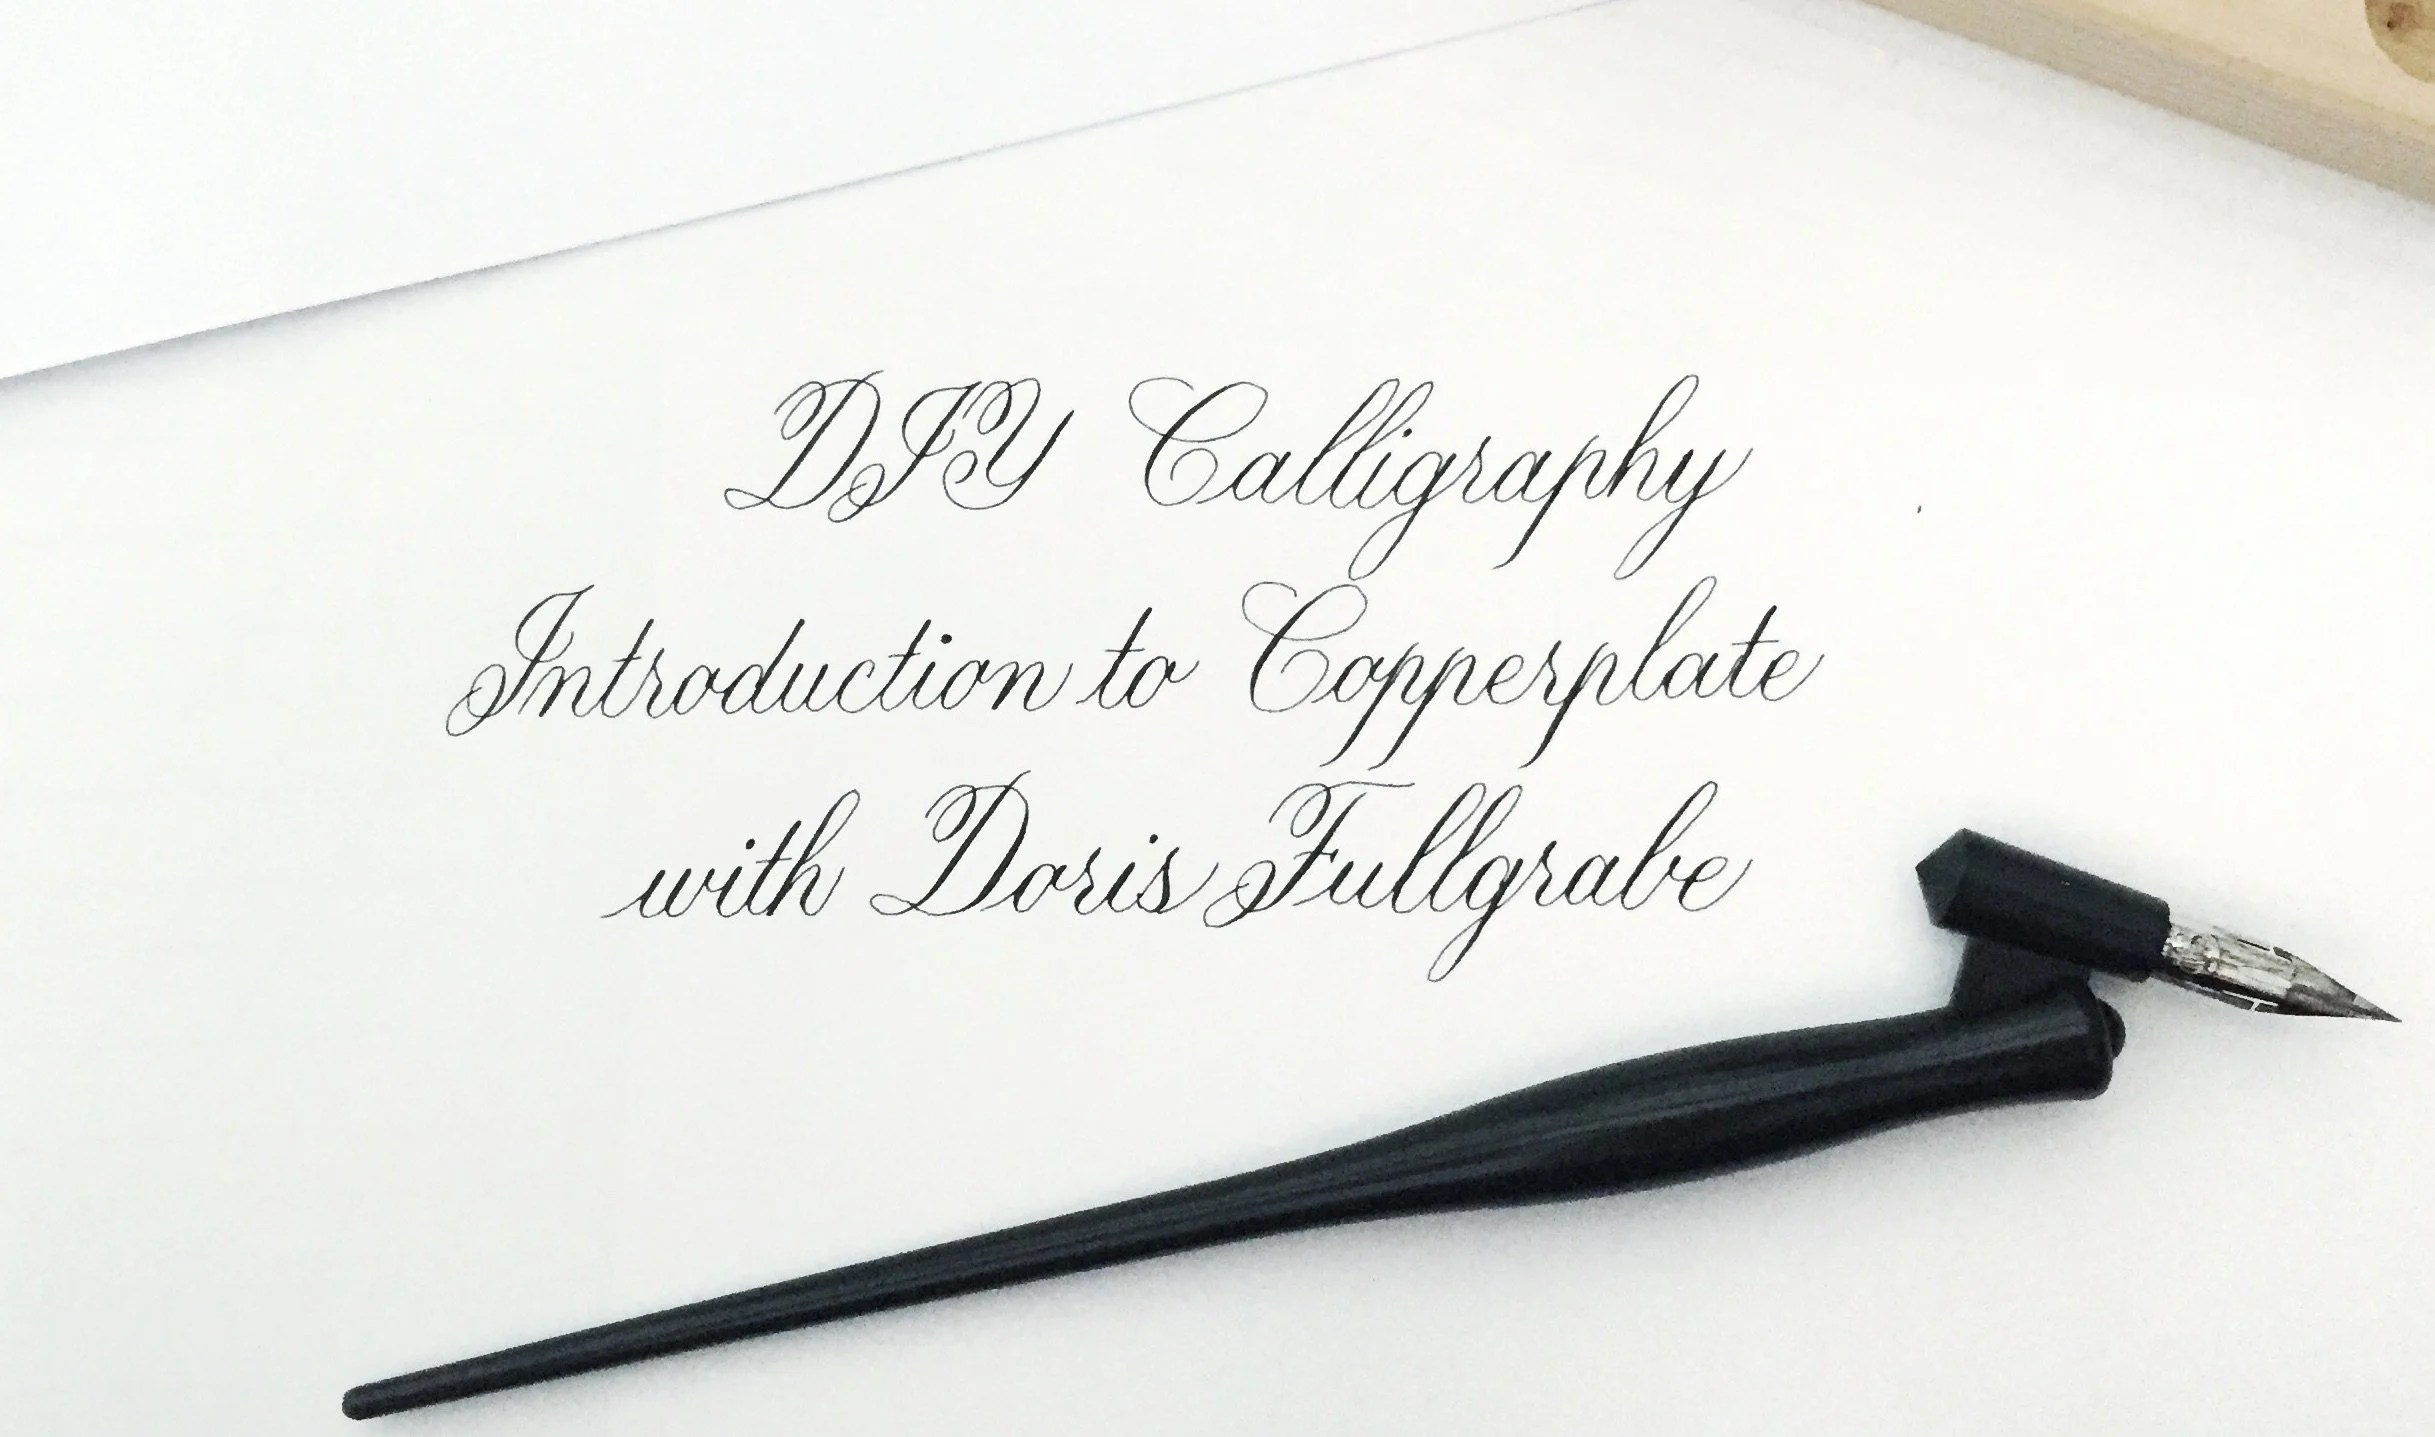 Copperplate Calligraphy Font Free Diy Calligraphy Introduction To The Copperplate Style Doris